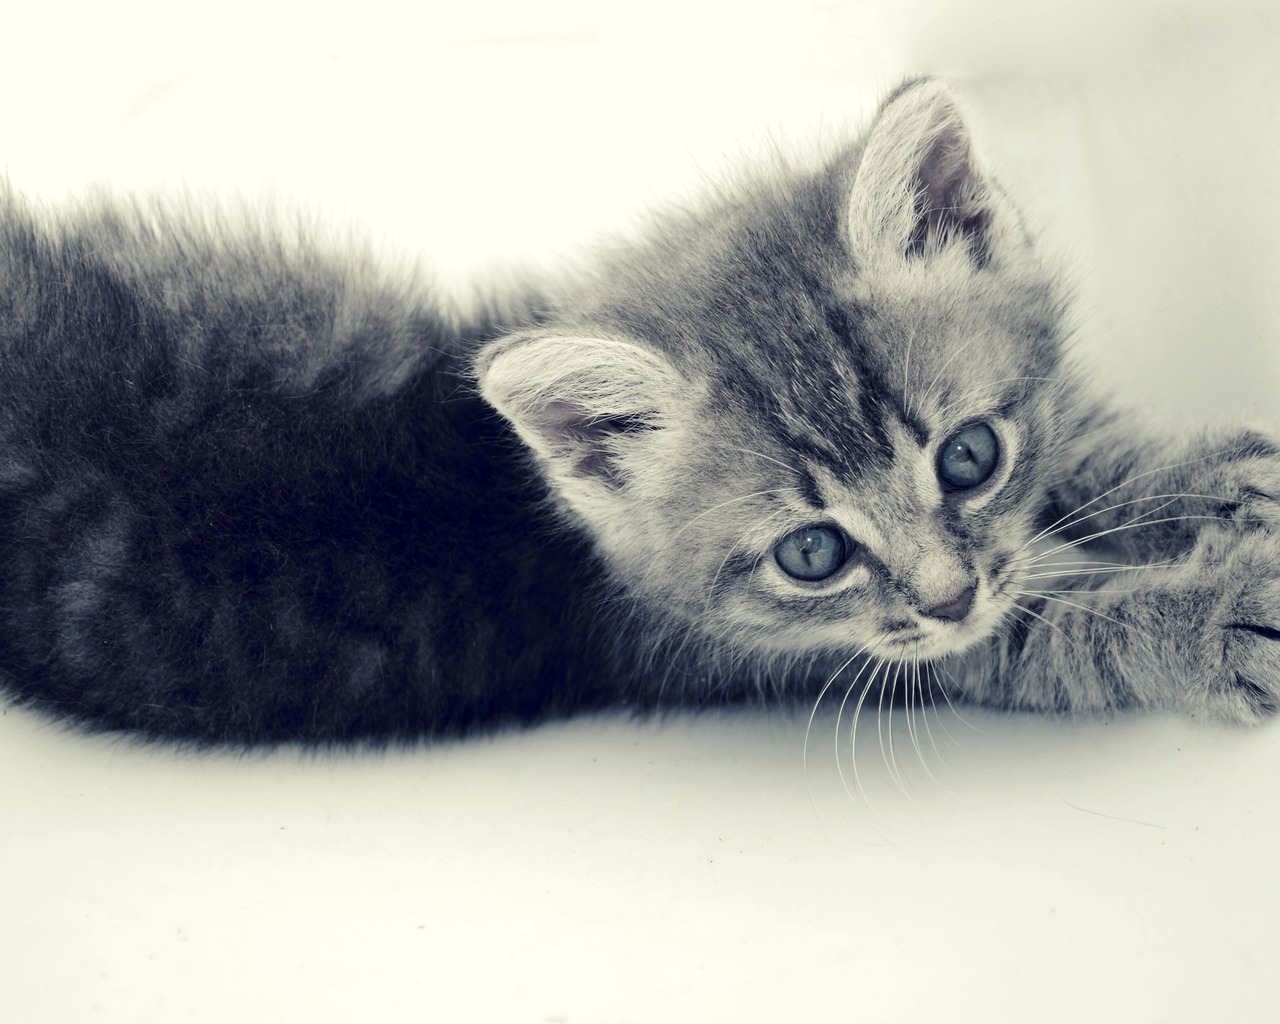 12682 download wallpaper Animals, Cats screensavers and pictures for free